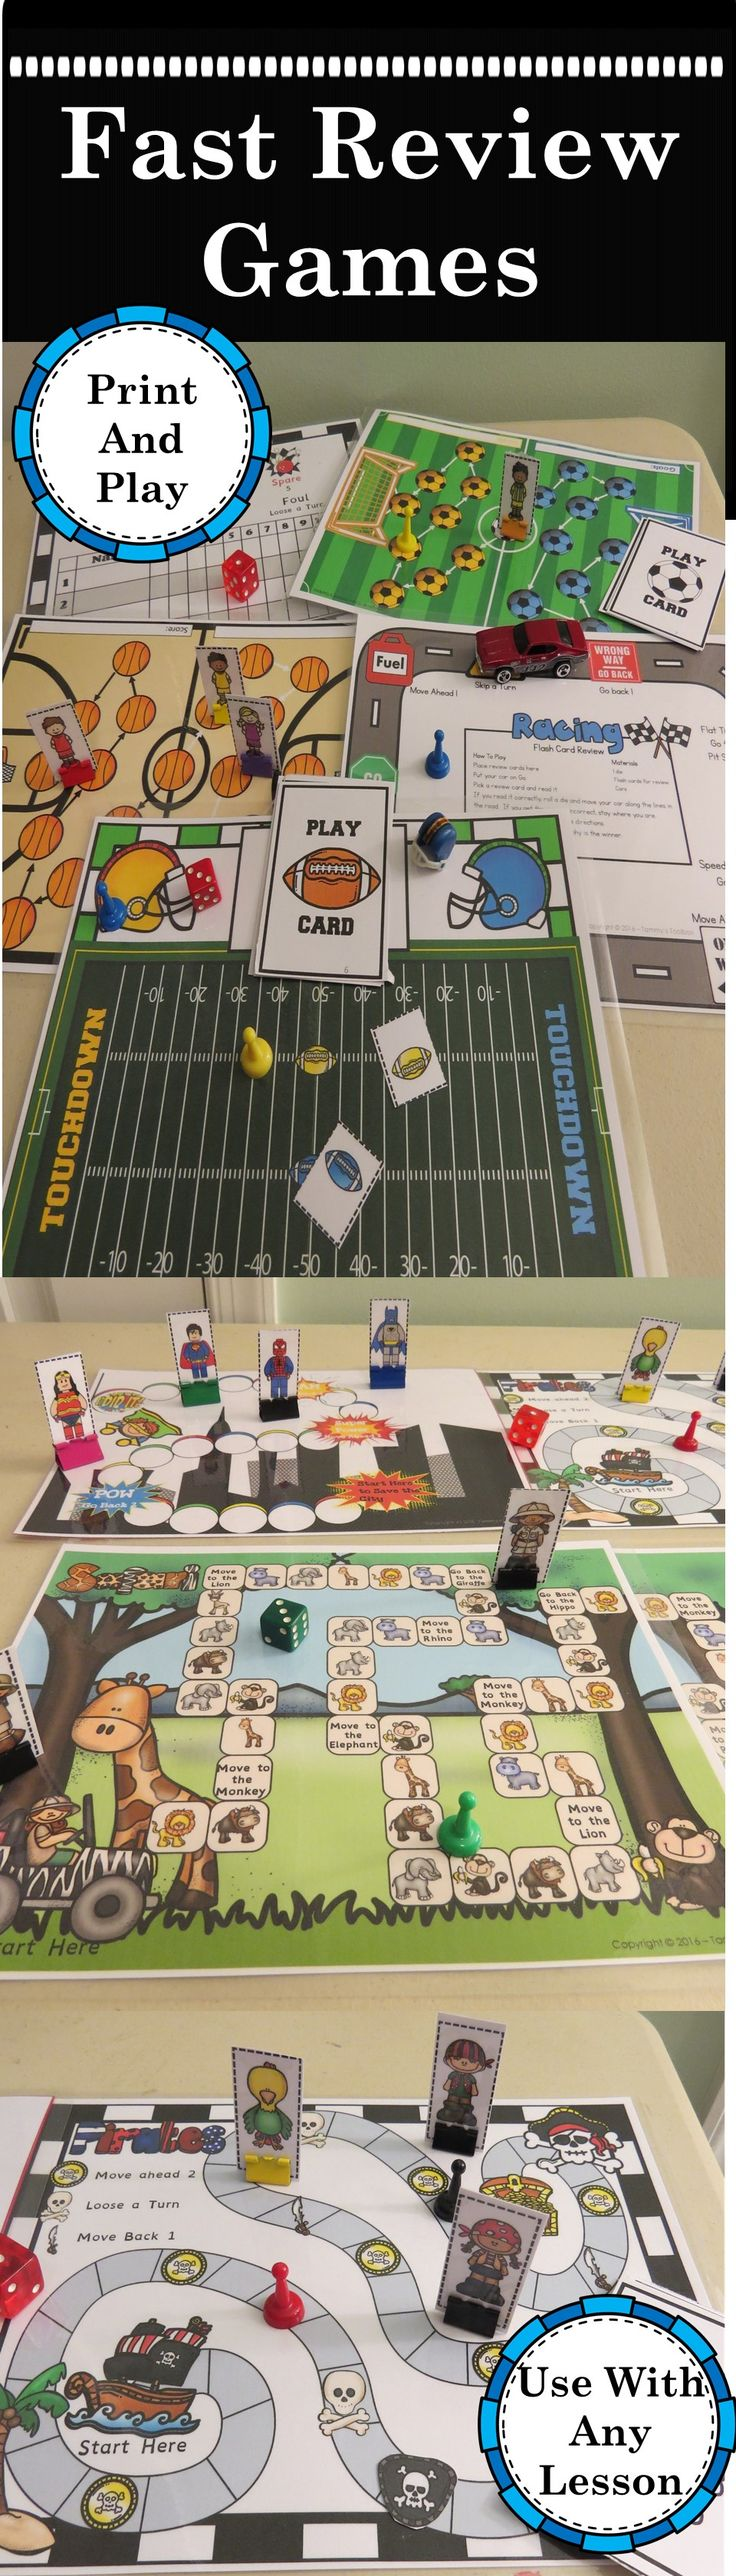 Fast and Fabulous Flash Card Review Games make reviewing any subject exciting. These print and play games can be used with any set of flash or word cards. They work great to practice sight words, vocabulary, math facts, and any subject area. Perfect for special ed, ELL, home school, and homework support. 10 different themes available. Soccer, Baseball, Football, Basketball, Bowling, Pirates, Safari, Super Heroes, Fall Fun, Racing. www.teacherspayteachers.com/store/tammys-toolbox-4544